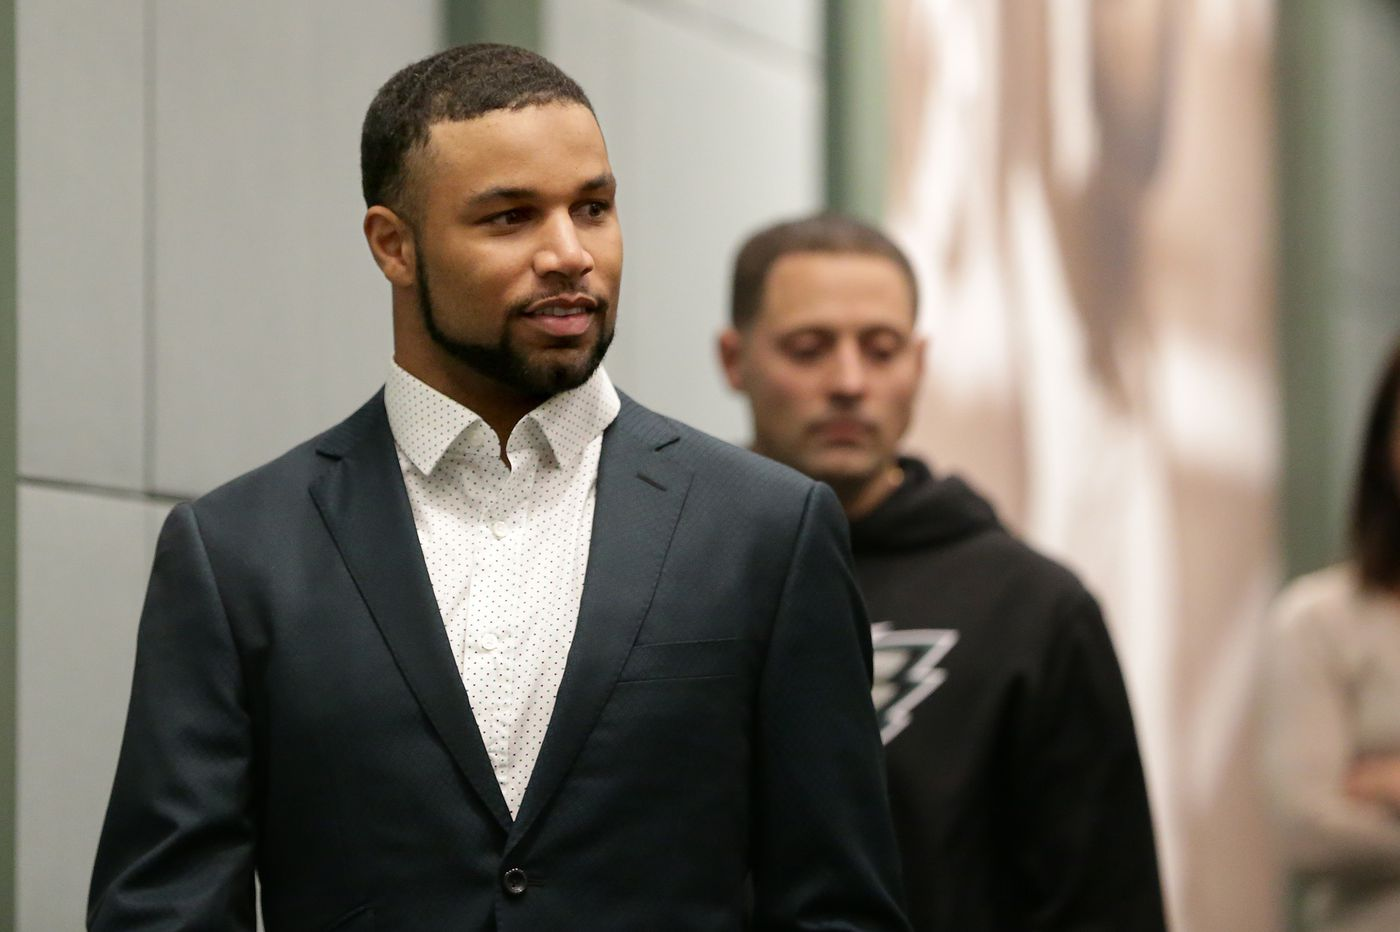 Golden Tate met Eagles fans on flight to Philadelphia, wants them to know he's 'all-in' and expects to play more than 8 games